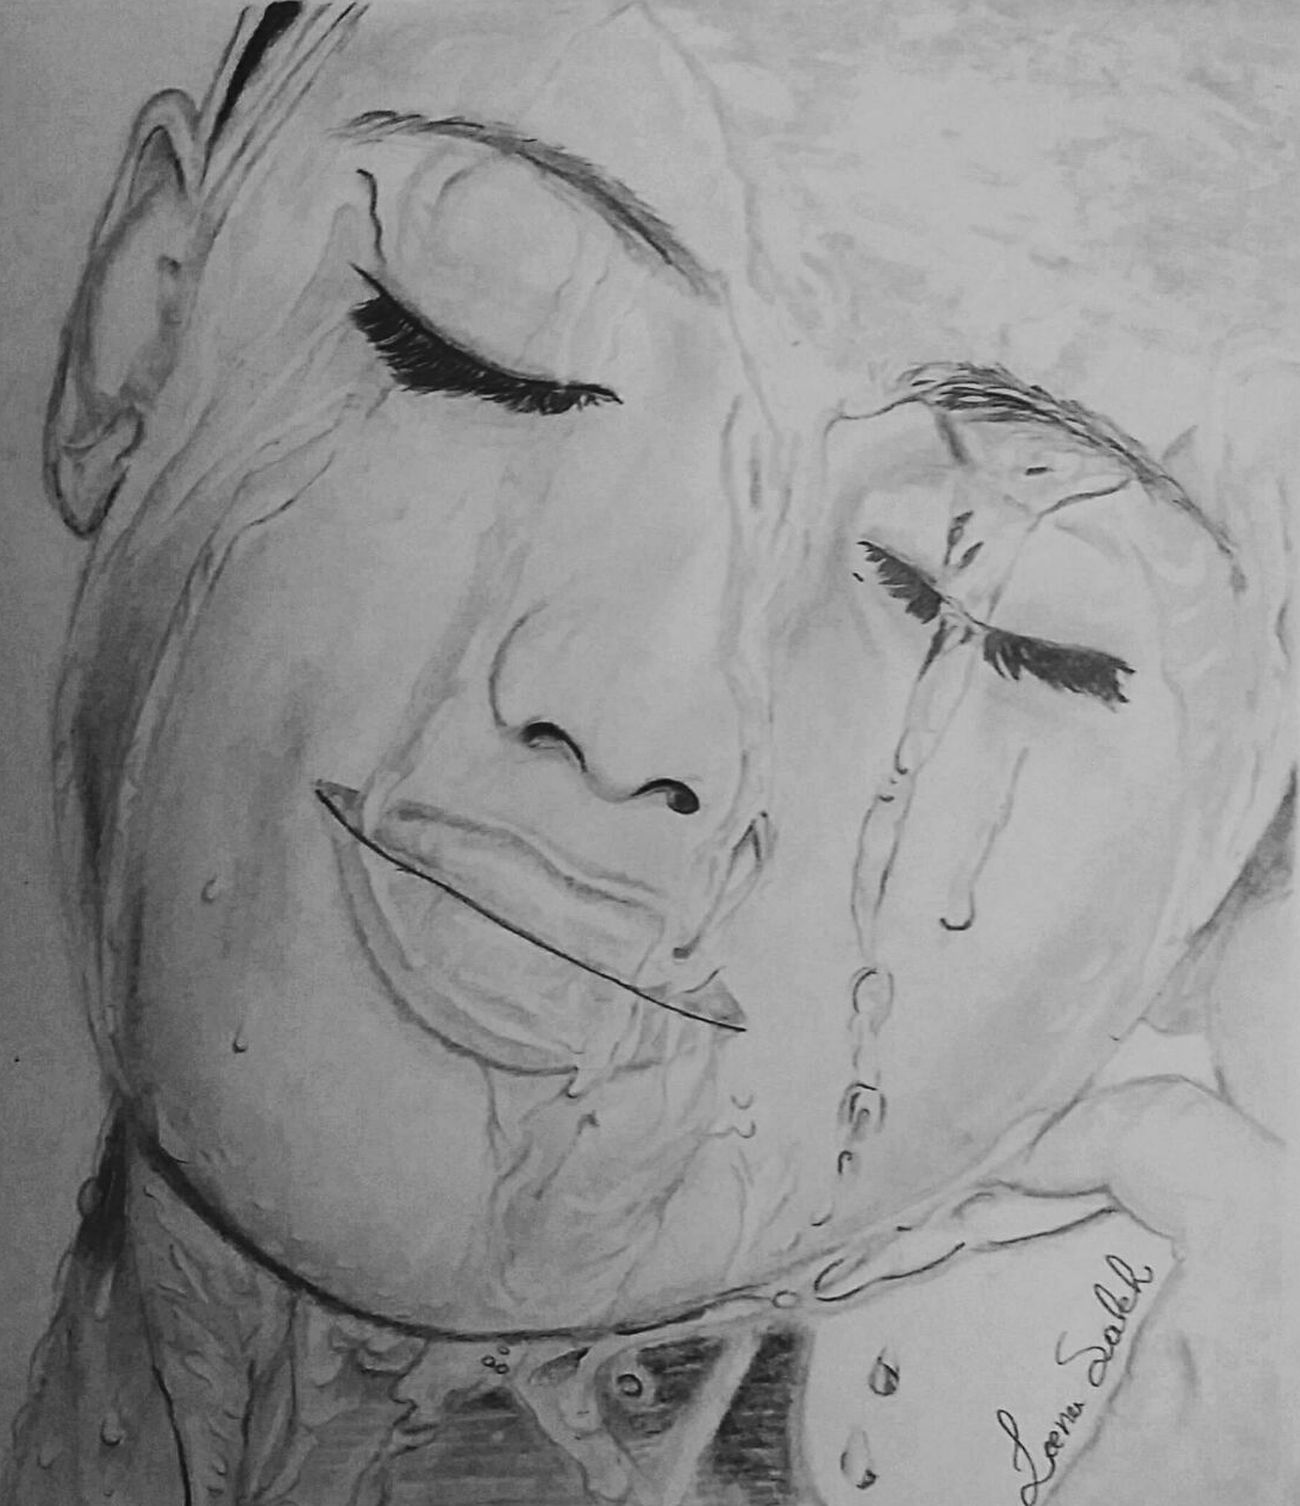 Portrait Portrait Of A Woman Portrait Photography Water Drops Water Drops Sketch Sketching ☺ Face Portrait Face White Sketch Black&white Black&white Portrait My Art Work Myartwork Pencil Pencil Drawing Pencil Sketch  Art Art, Drawing, Creativity Art Gallery Drawing ✏ EyeEm Gallery Eyeem Art Love Drawing ❤